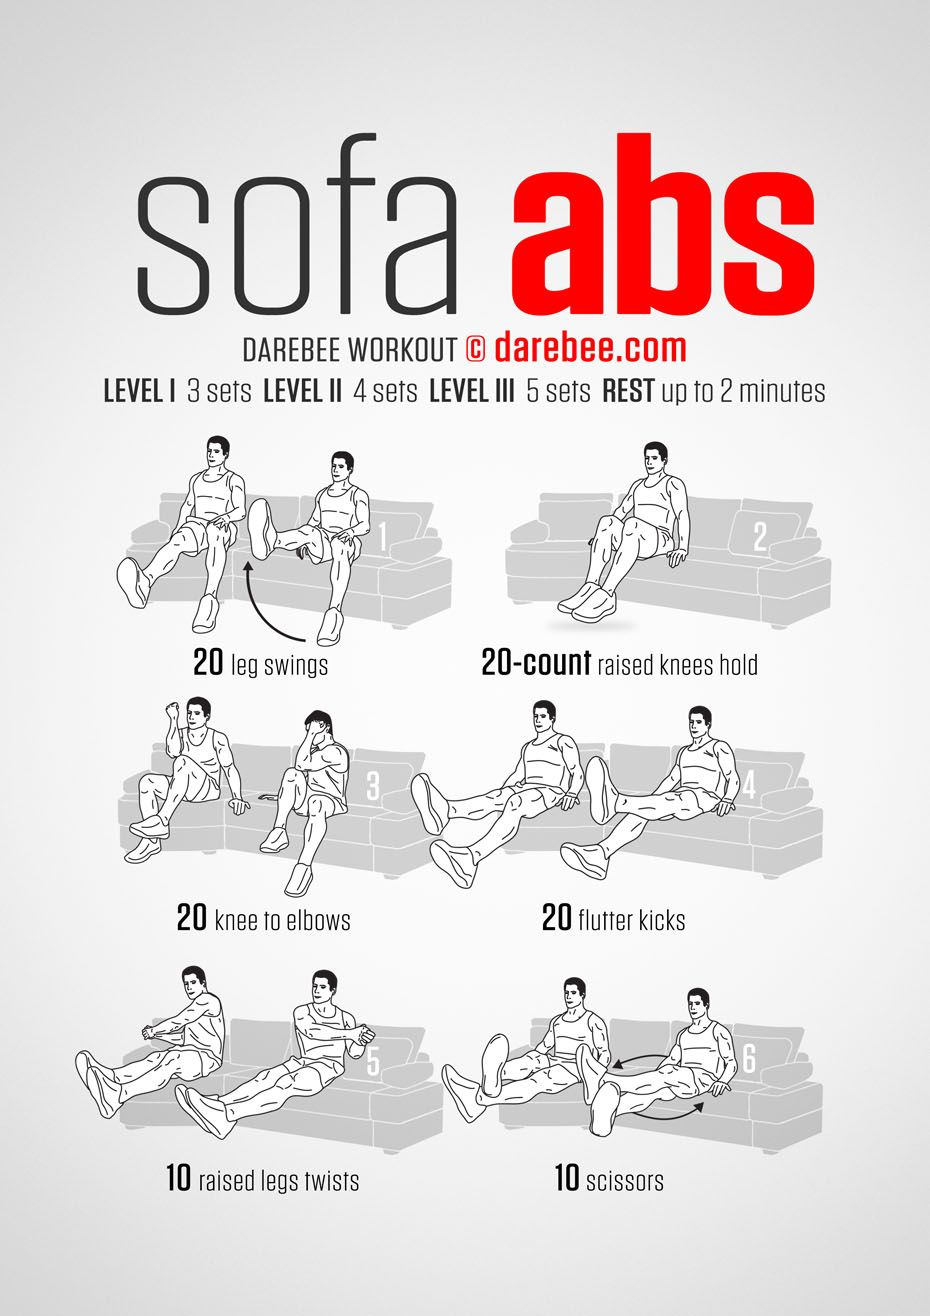 Sofa abs workout workout pinterest workout for Chair workouts